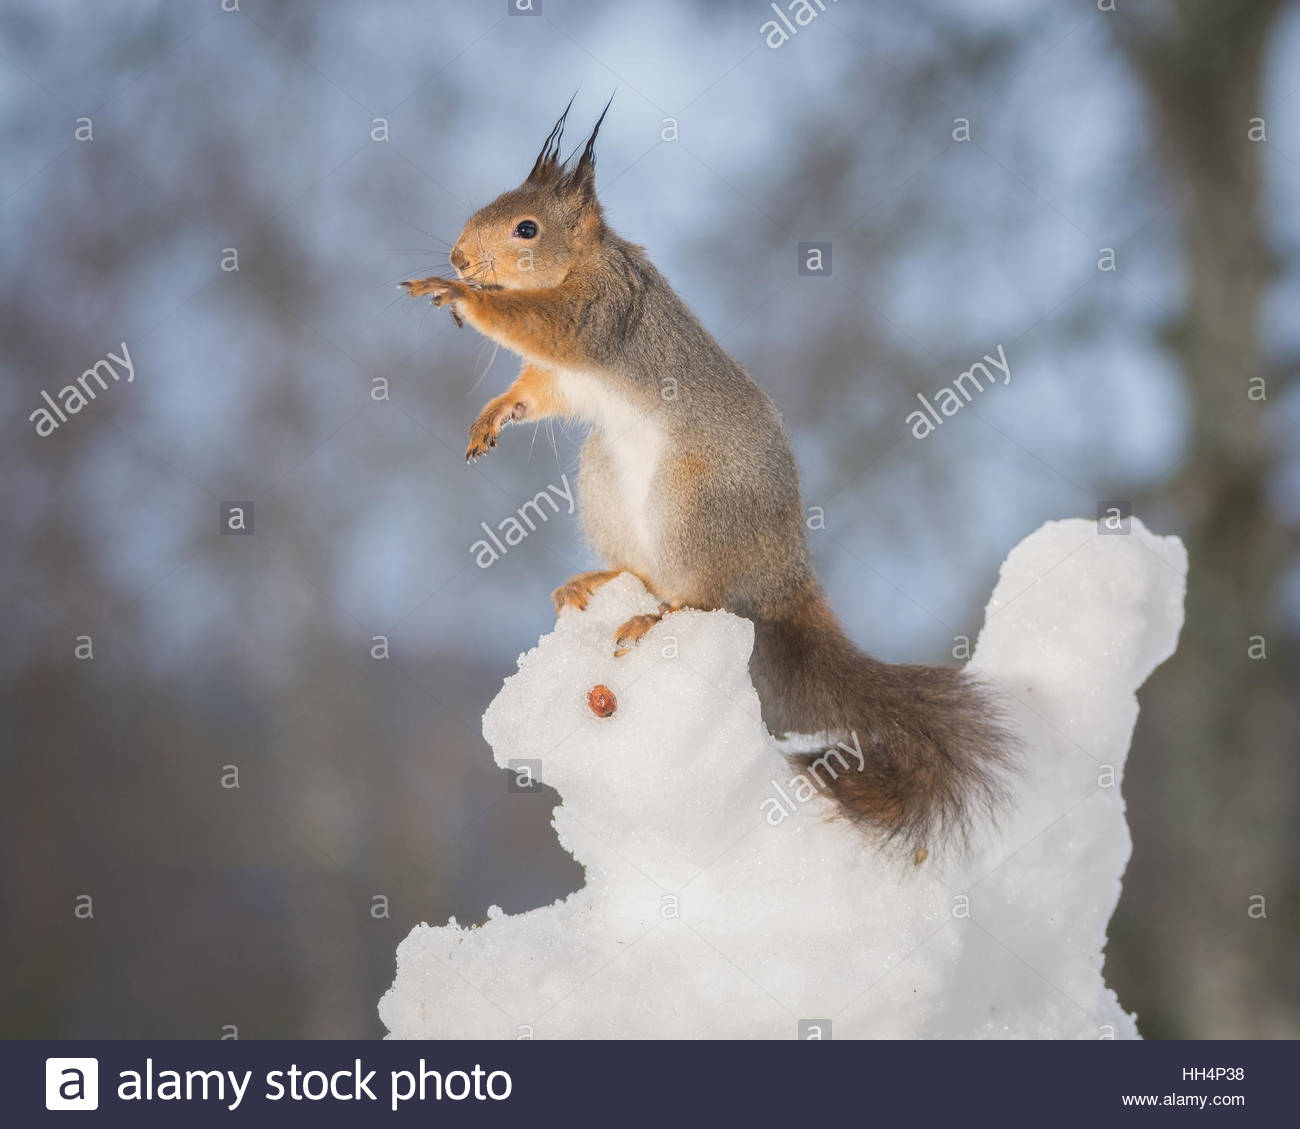 red squirrel on a snow animal - Stock Image